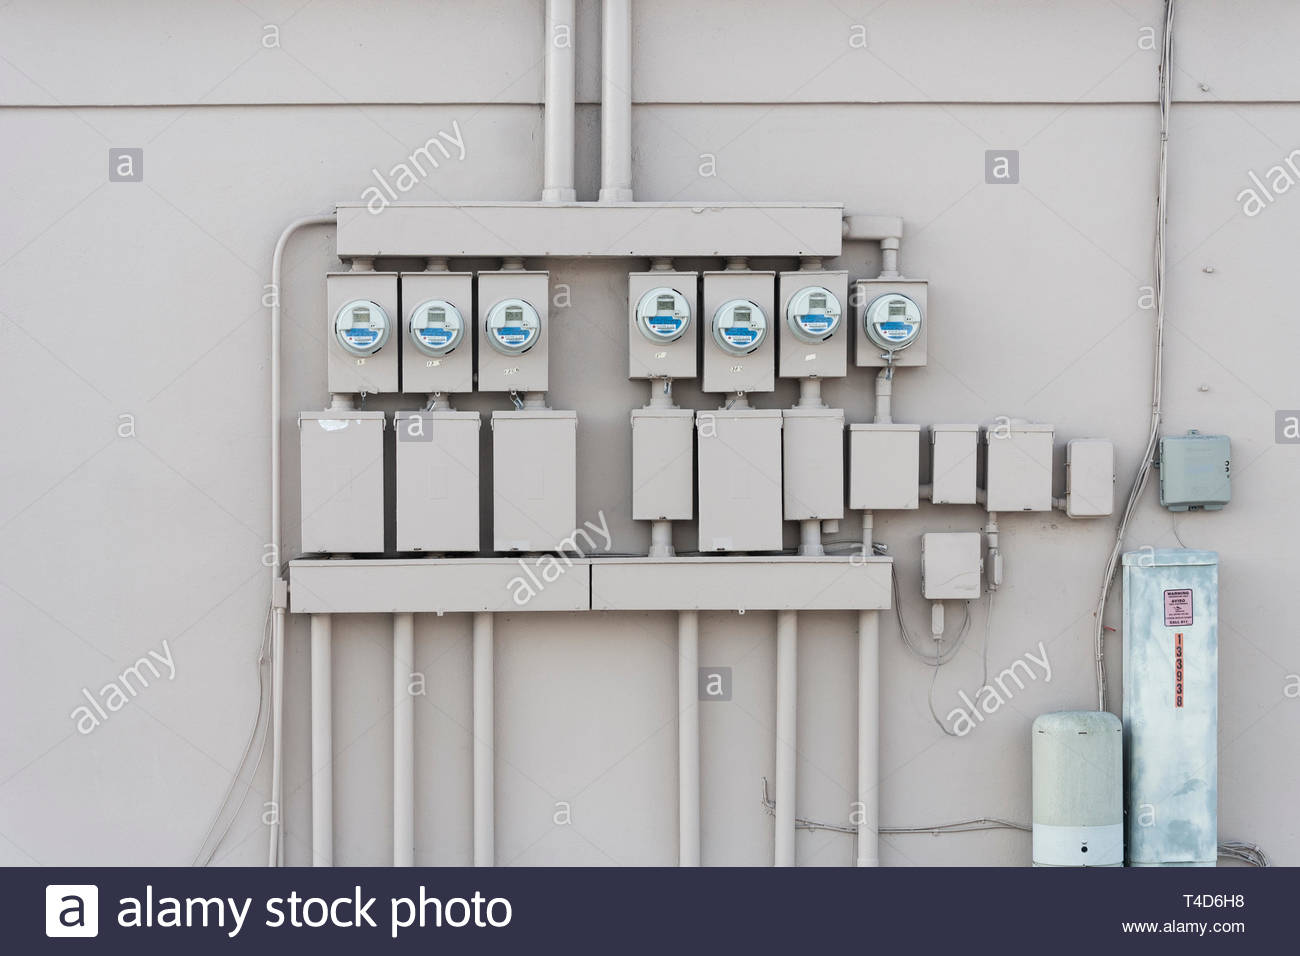 Seven electricity meter boxes on beige wall deadpan photography - Stock Image